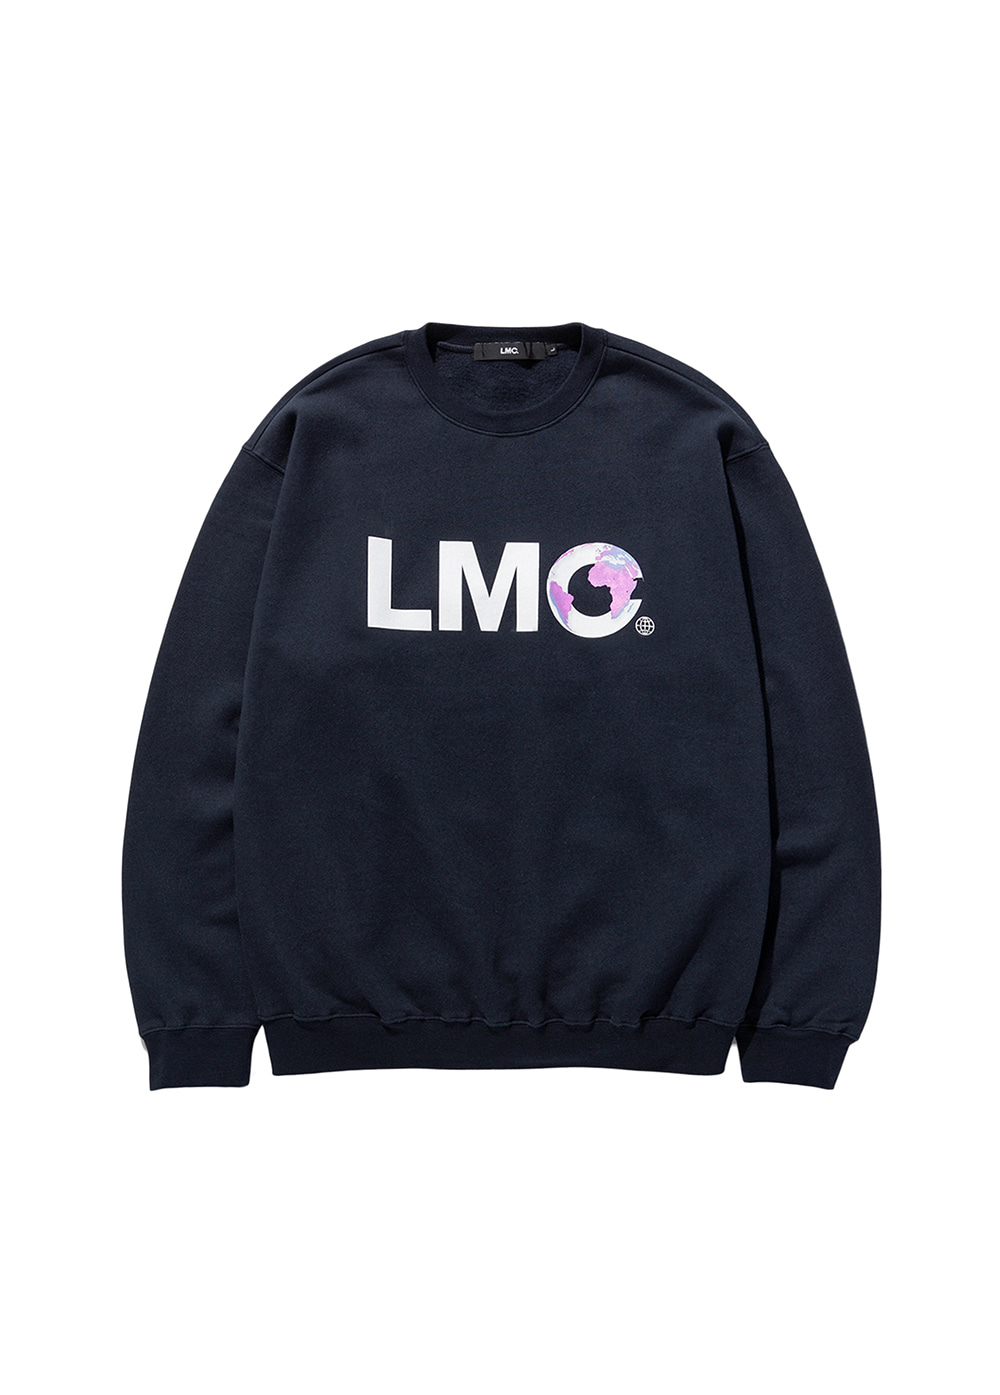 LMC EARTH LOGO SWEATSHIRT navy